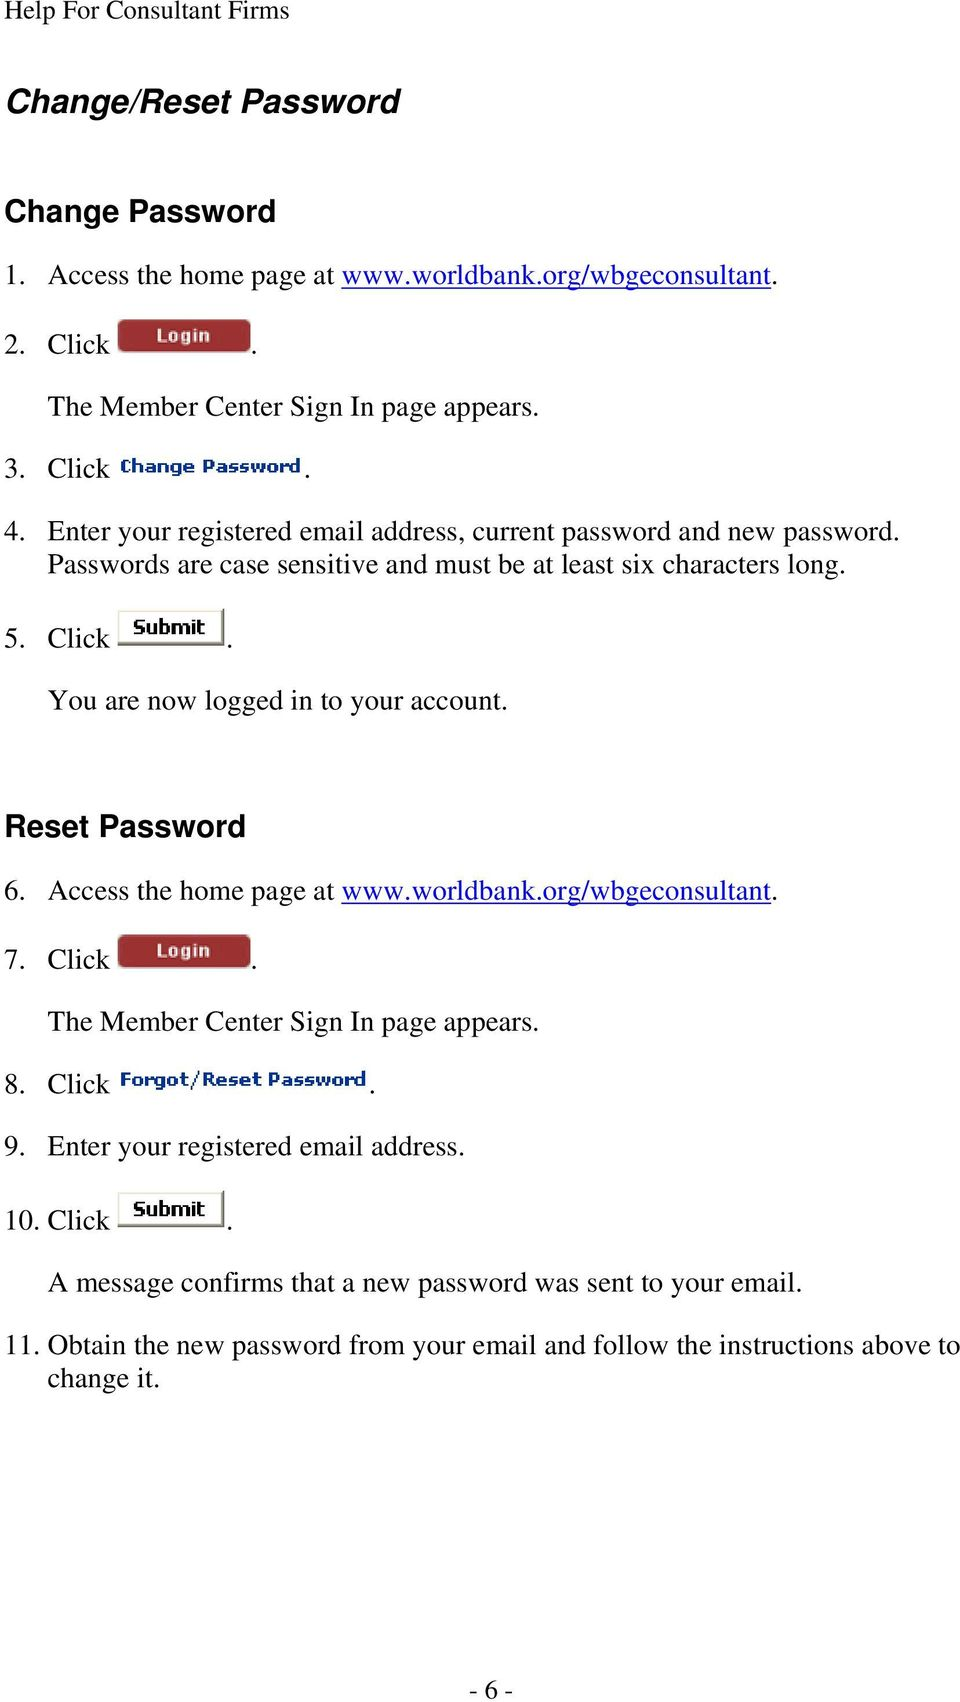 You are now logged in to your account. Reset Password 6. Access the home page at www.worldbank.org/wbgeconsultant. 7. Click. The Member Center Sign In page appears. 8. Click. 9.